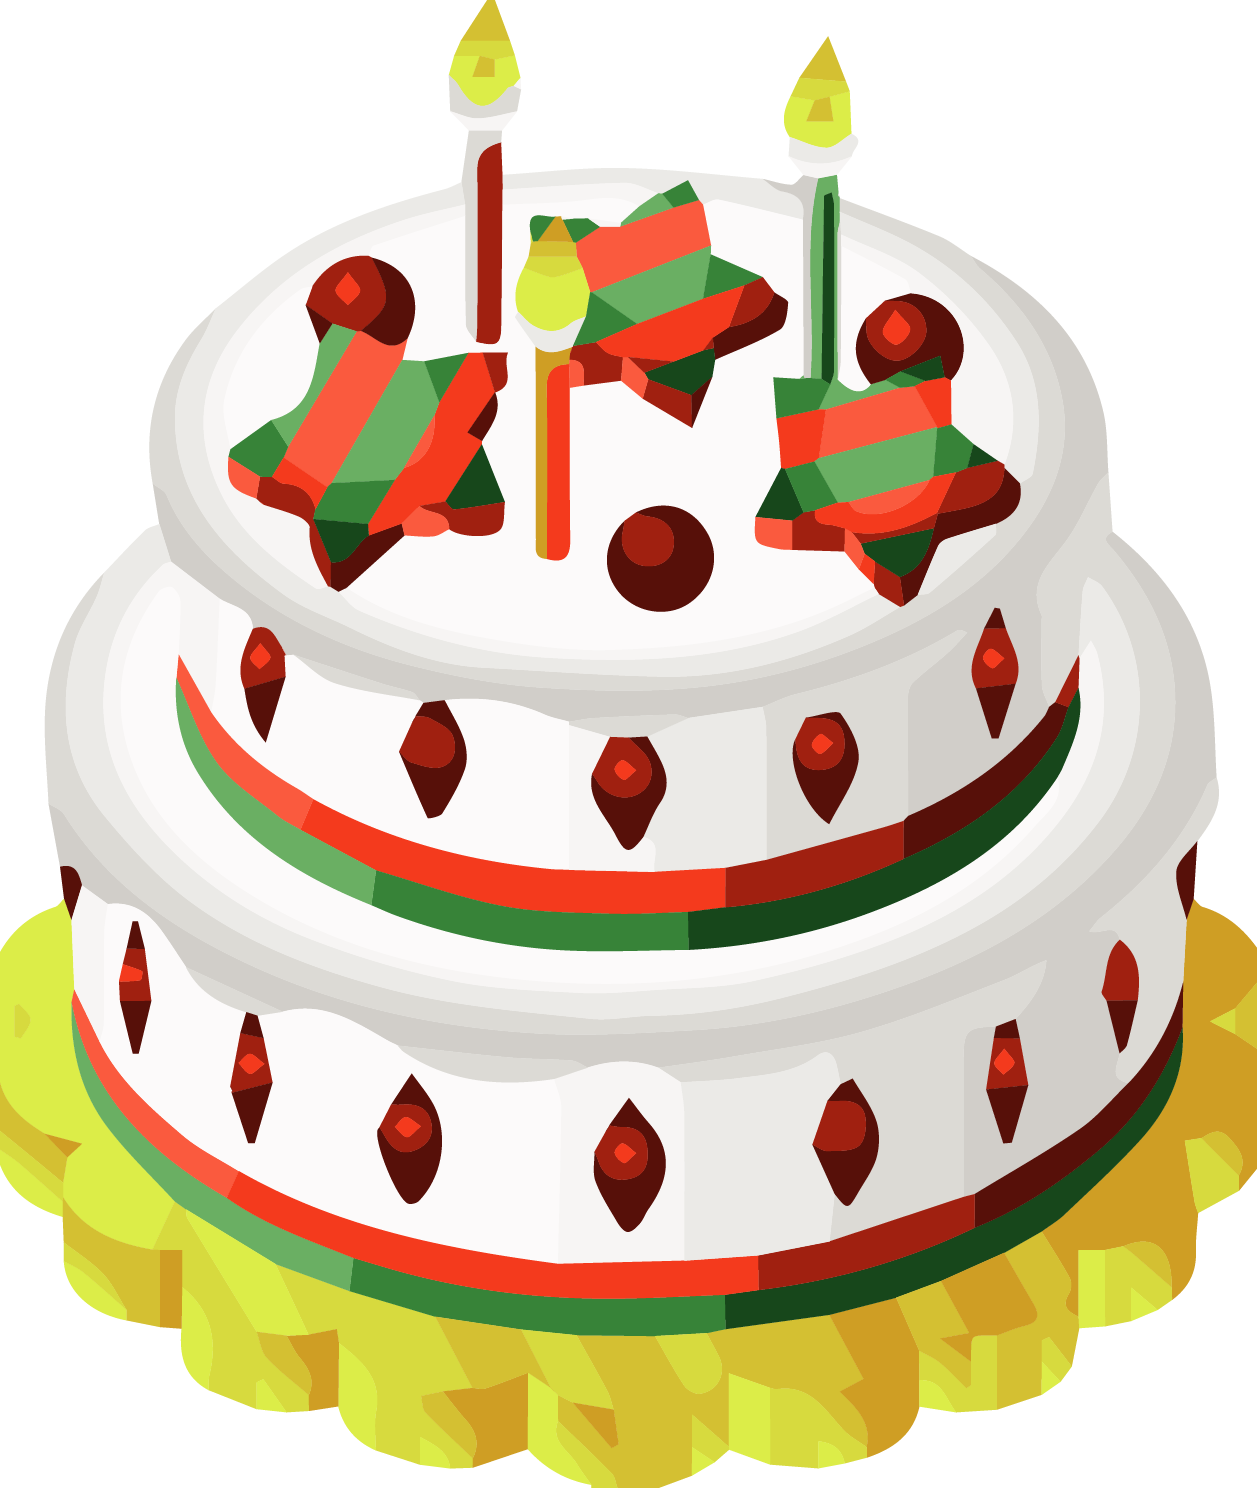 Christmas birthday clipart image royalty free download Christmas Birthday Clip Art - List Deluxe image royalty free download